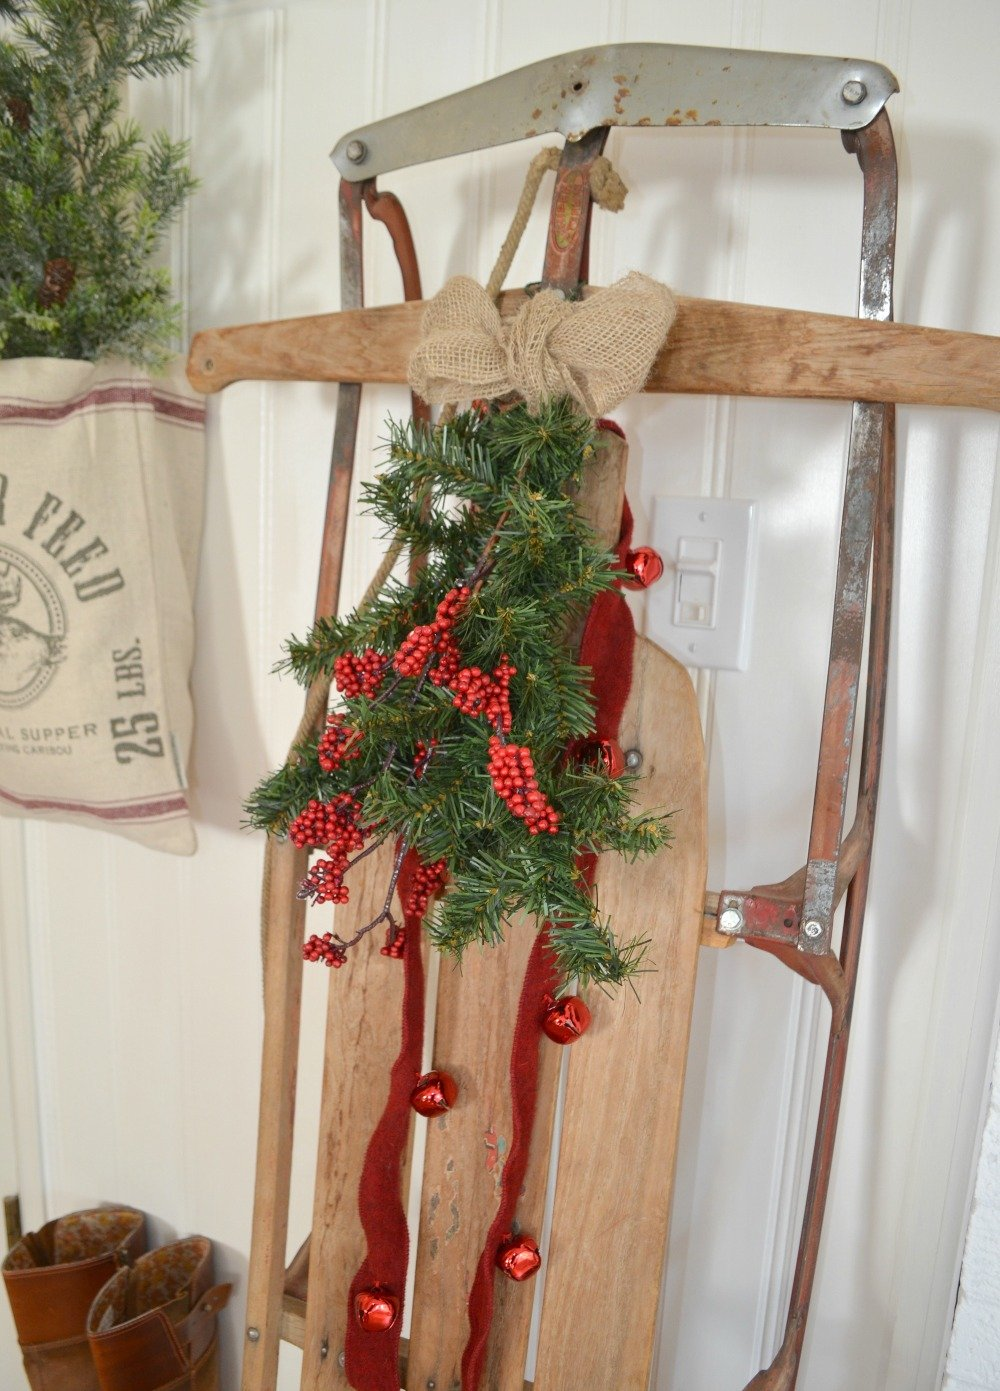 A Vintage Christmas Entryway. Farmhouse Christmas Decor. Vintage Sled Christmas Decor.